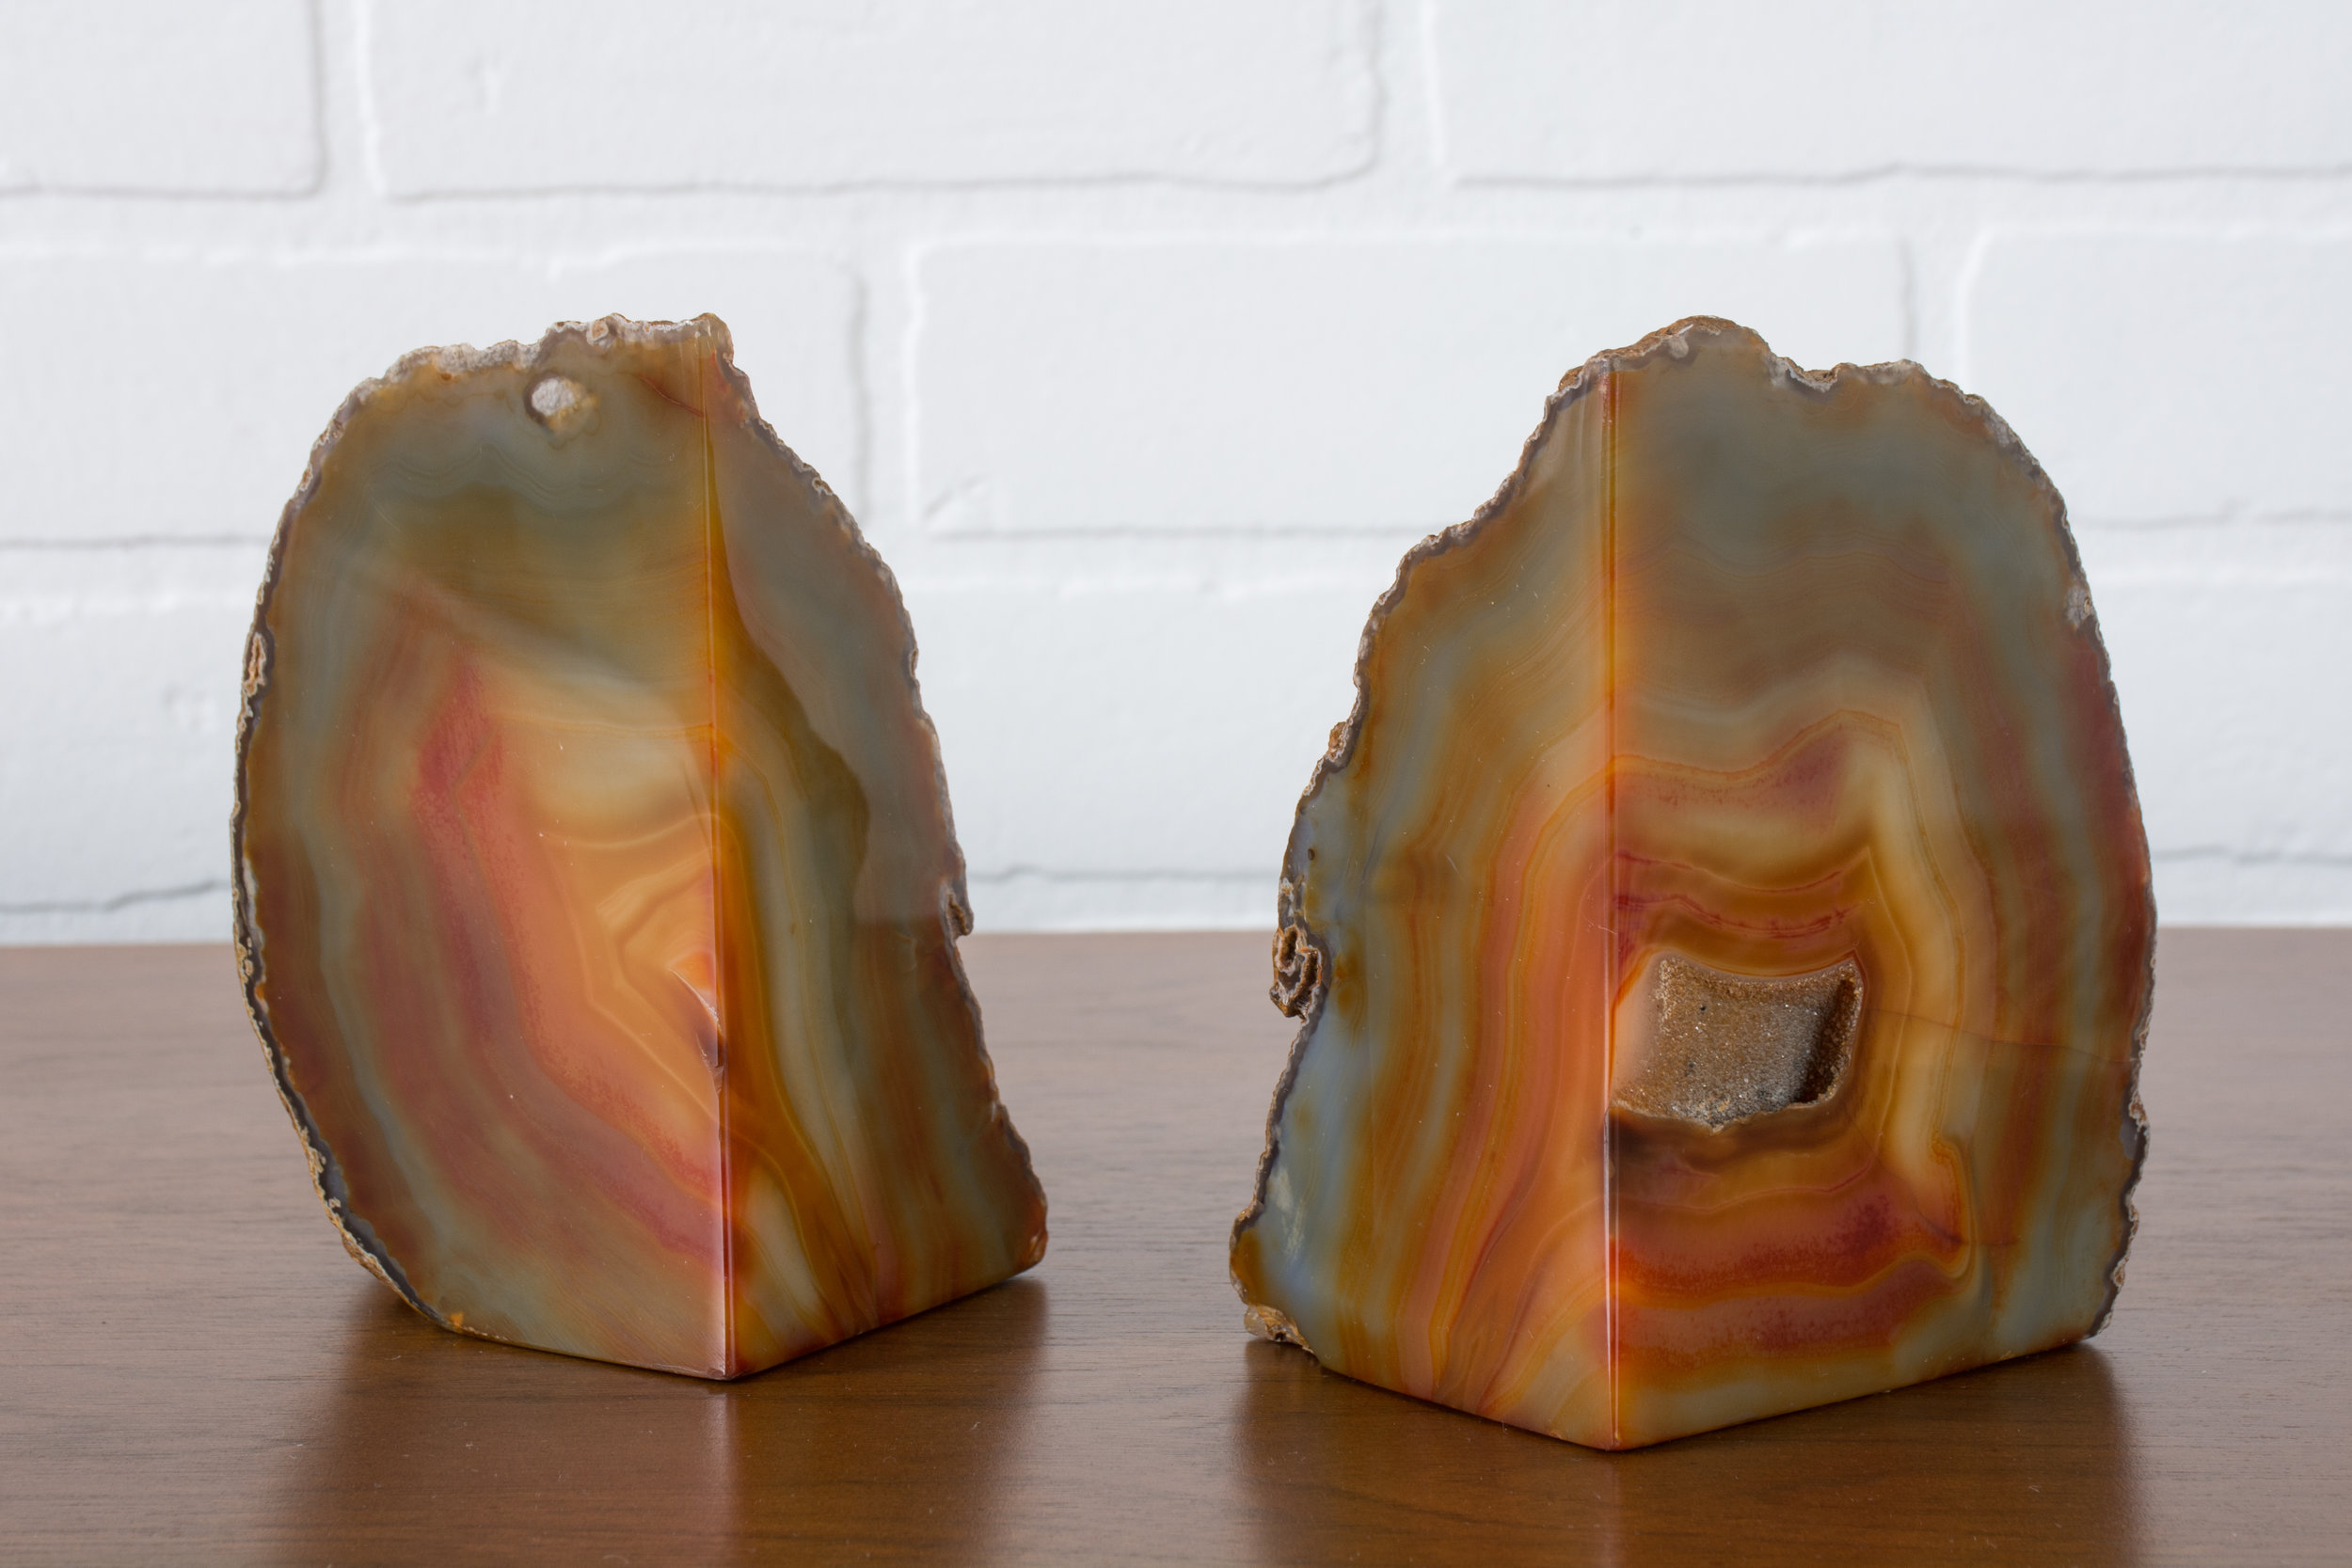 Pair of Vintage Geode Bookends from Brazil